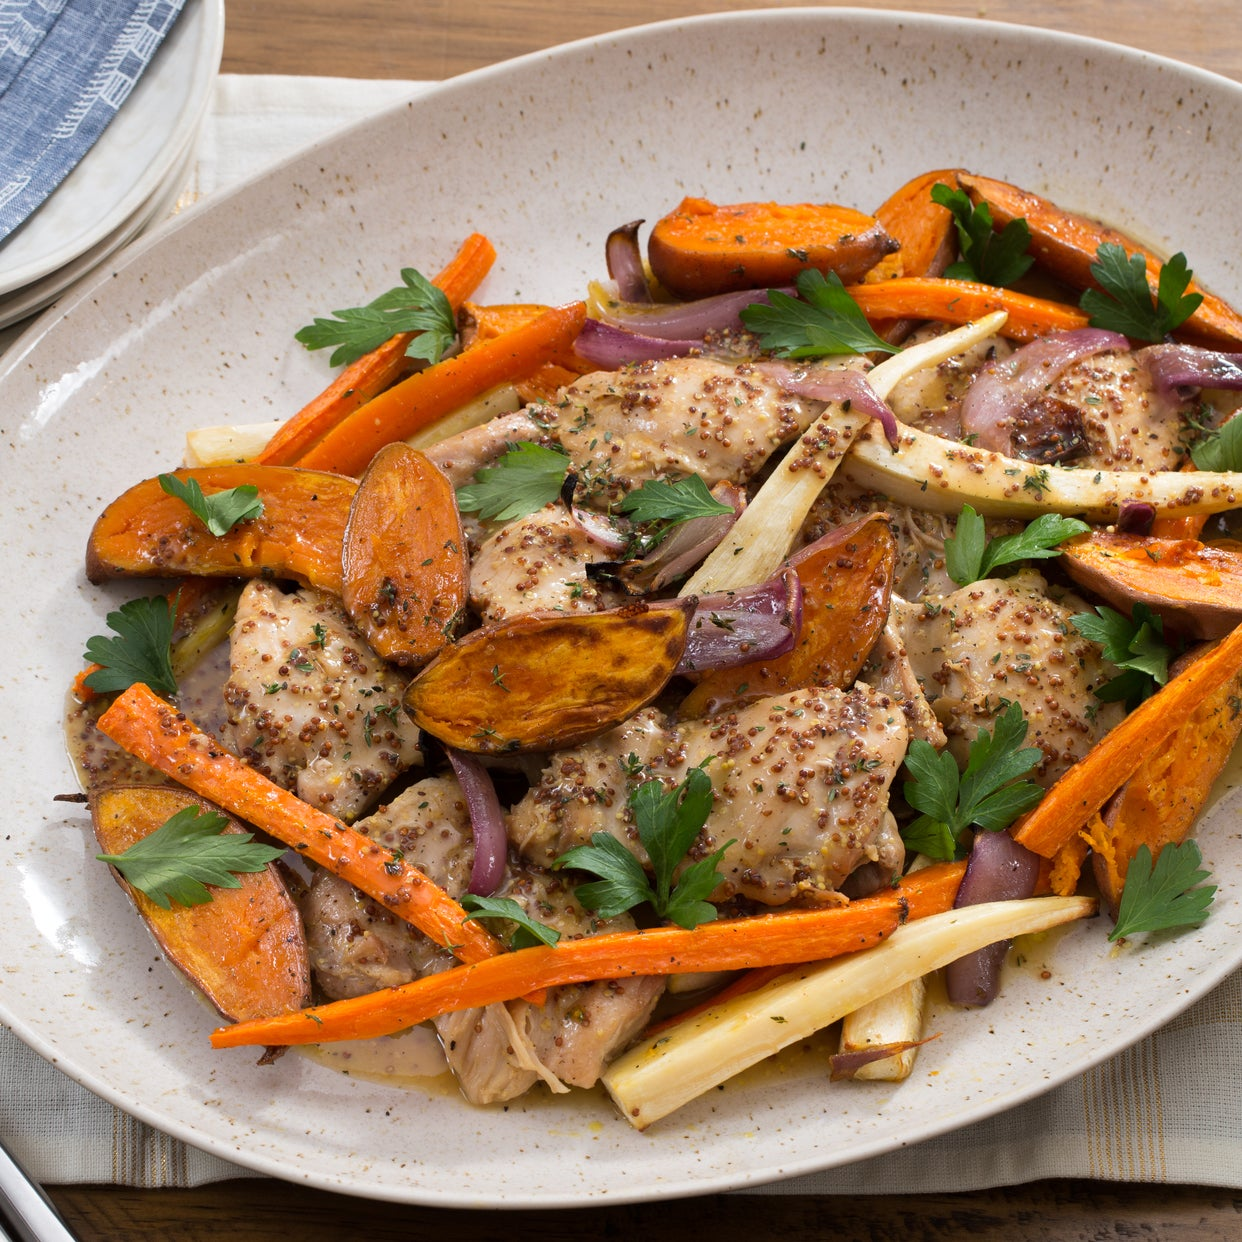 Apple Cider-Glazed Chicken with Roasted Parsnip, Carrots & Baby Sweet Potatoes